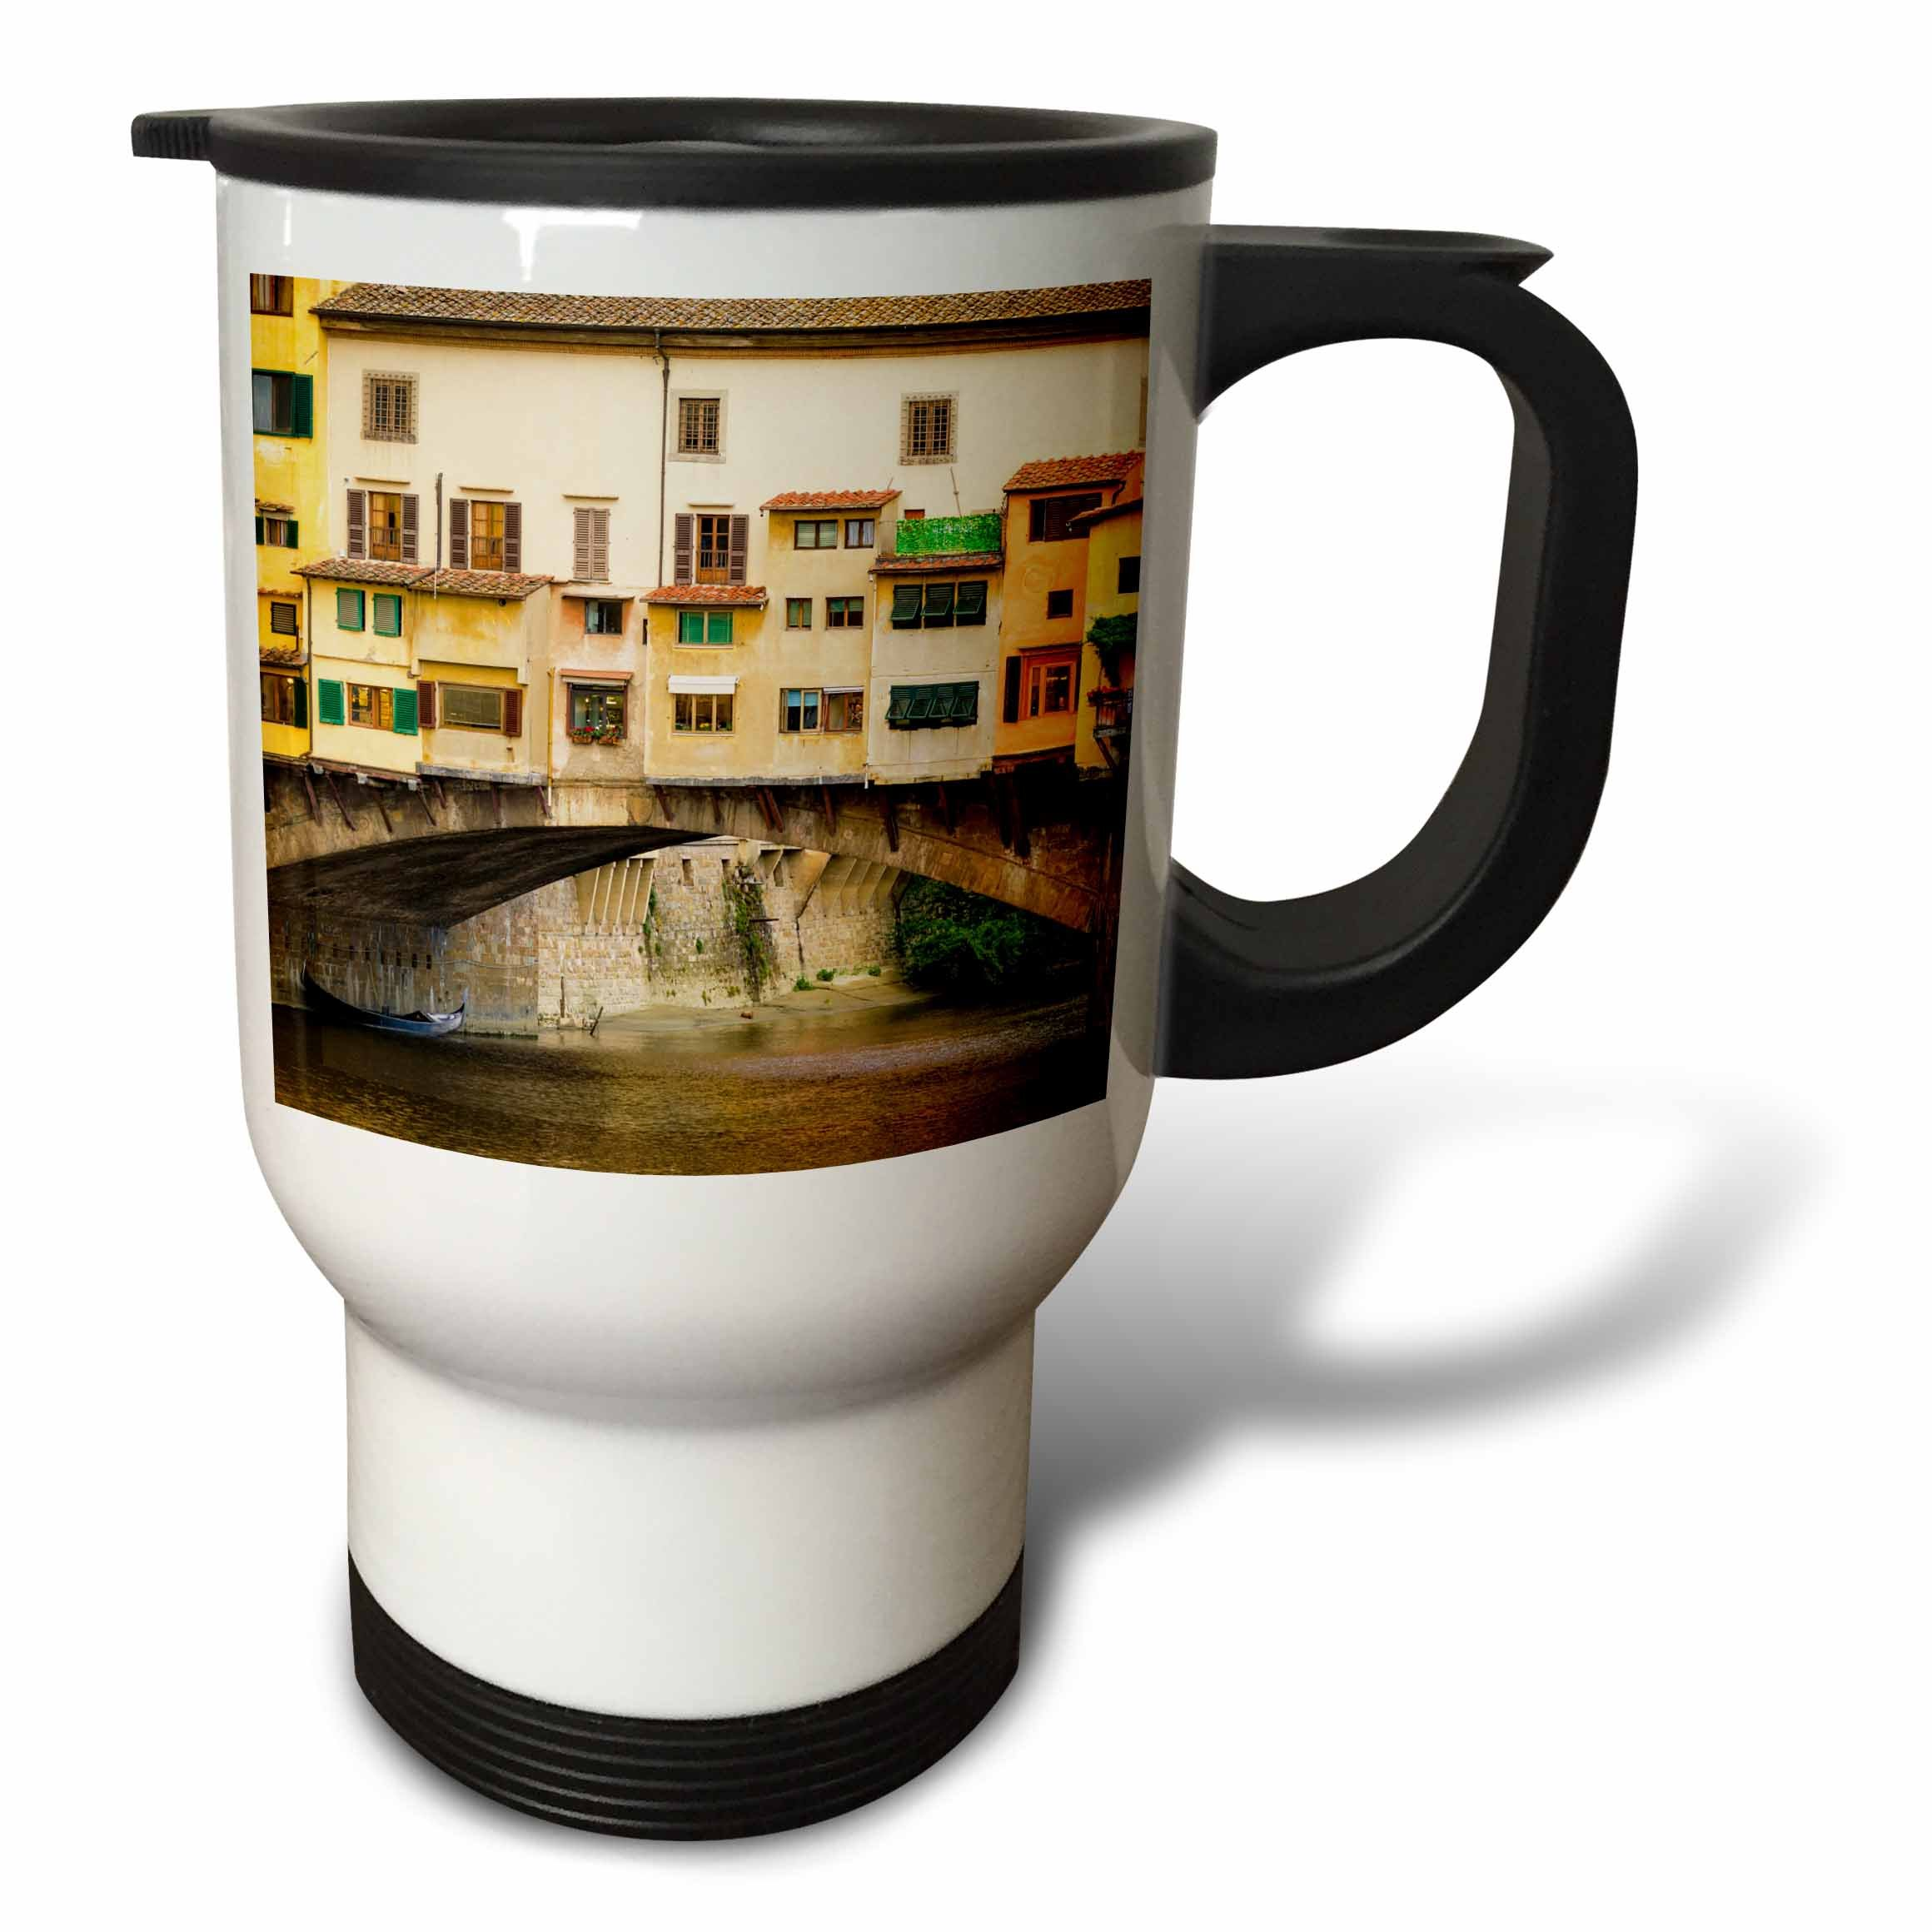 3dRose Danita Delimont - Cities - Shop windows and shutters, Ponte Vecchio, Florence, Tuscany, Italy - 14oz Stainless Steel Travel Mug (tm_277636_1)